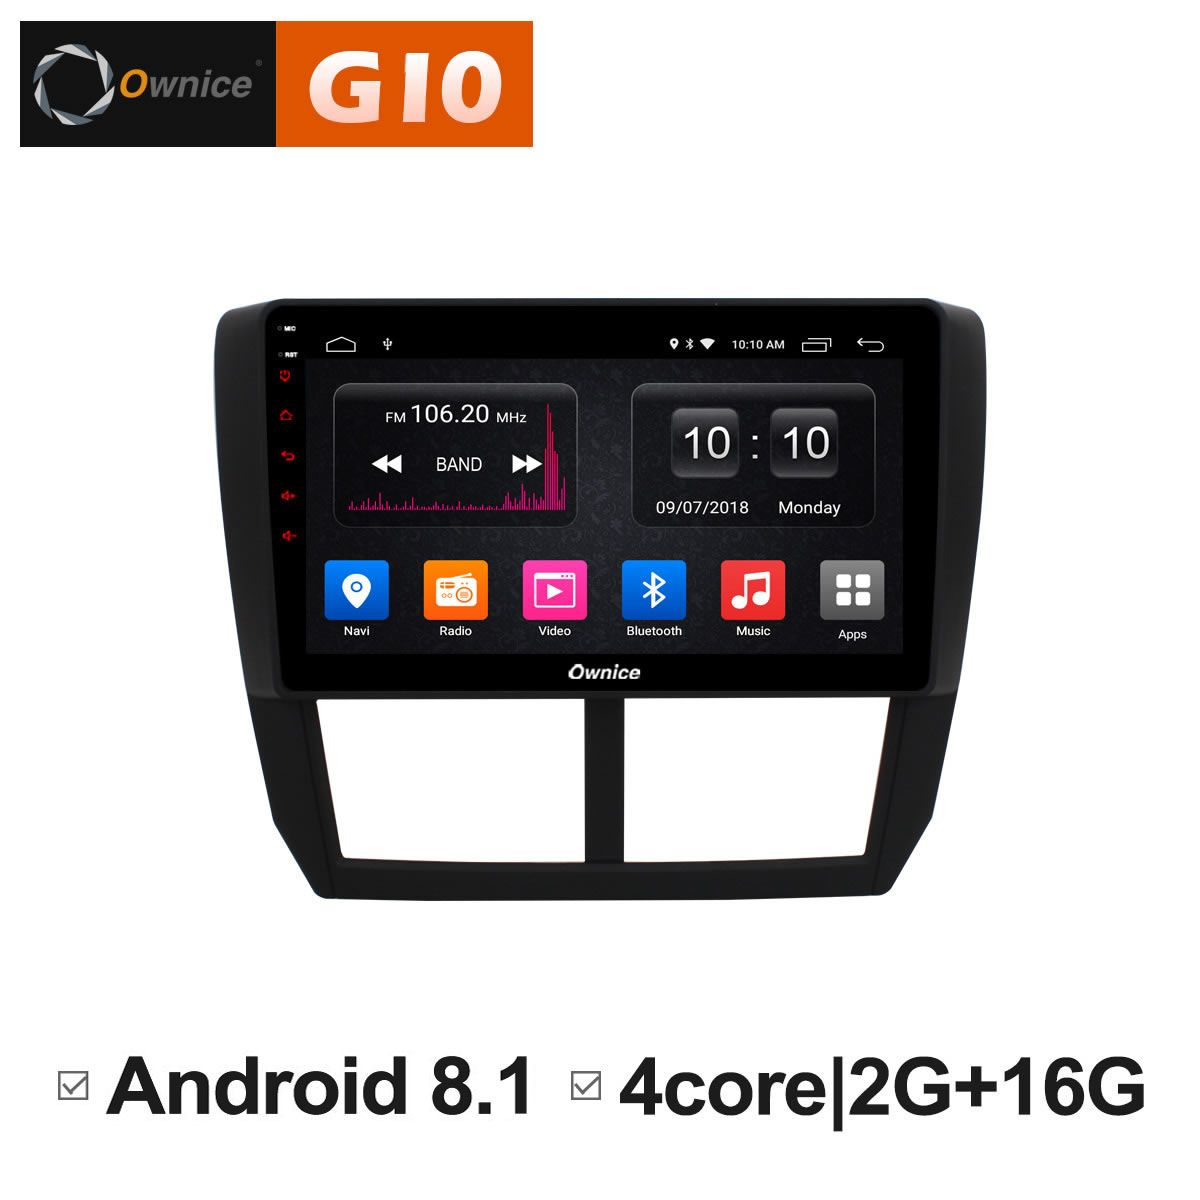 Ownice C500+ G10 Octa 8 Core Android 8.1 2G RAM Car DVD GPS Navi Player Radio For Subaru Forester XV WRX 2008 2009 - 2012 DAB+